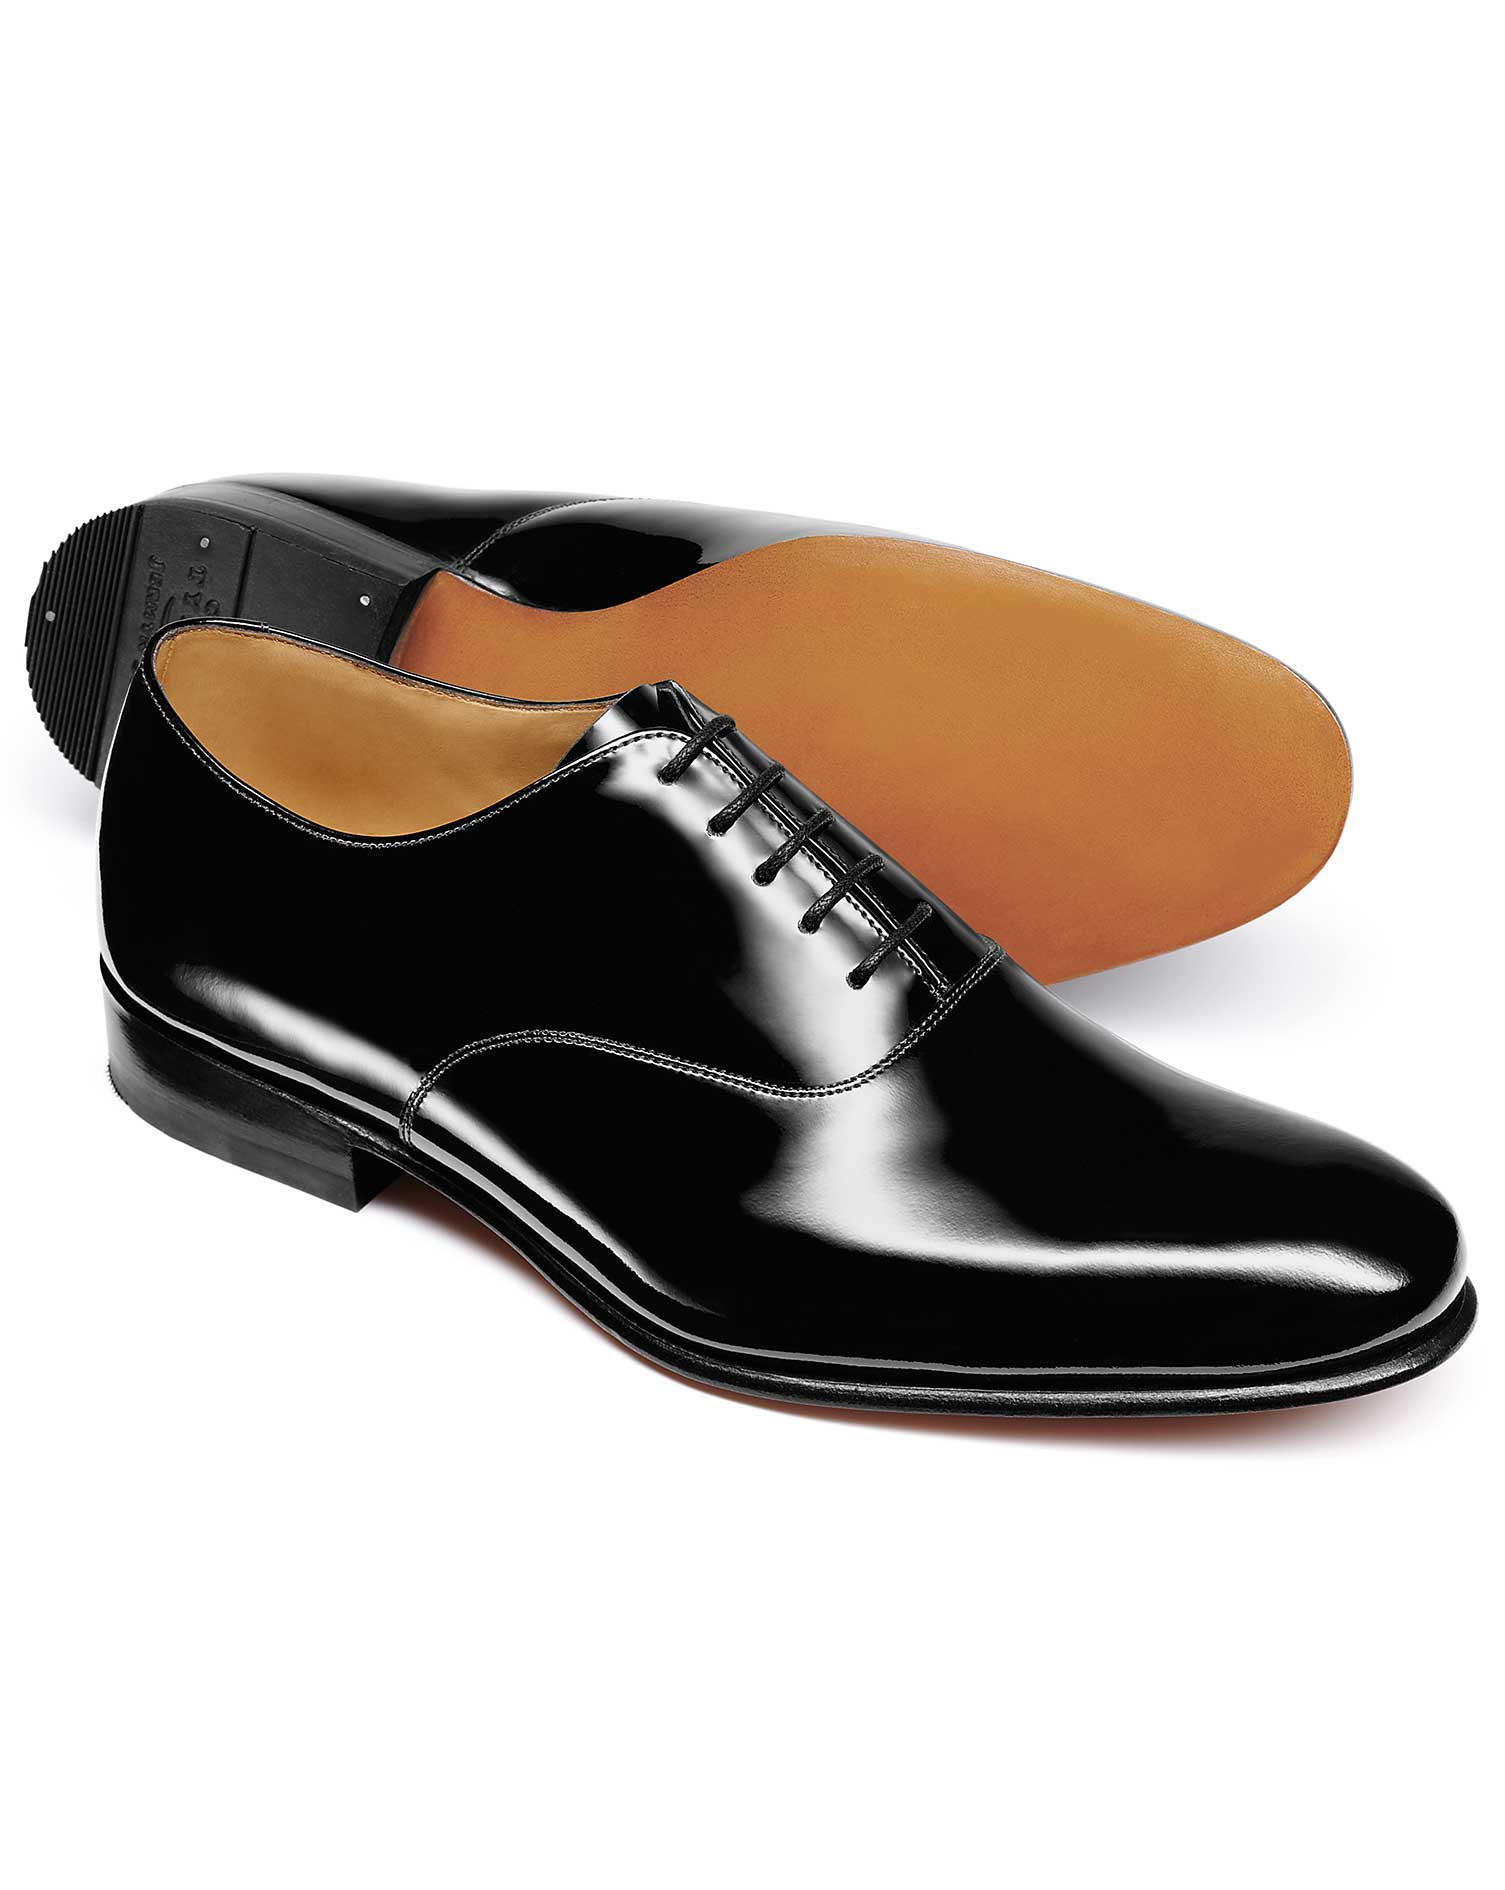 Black Patent Oxford Shoe Size 7 R by Charles Tyrwhitt